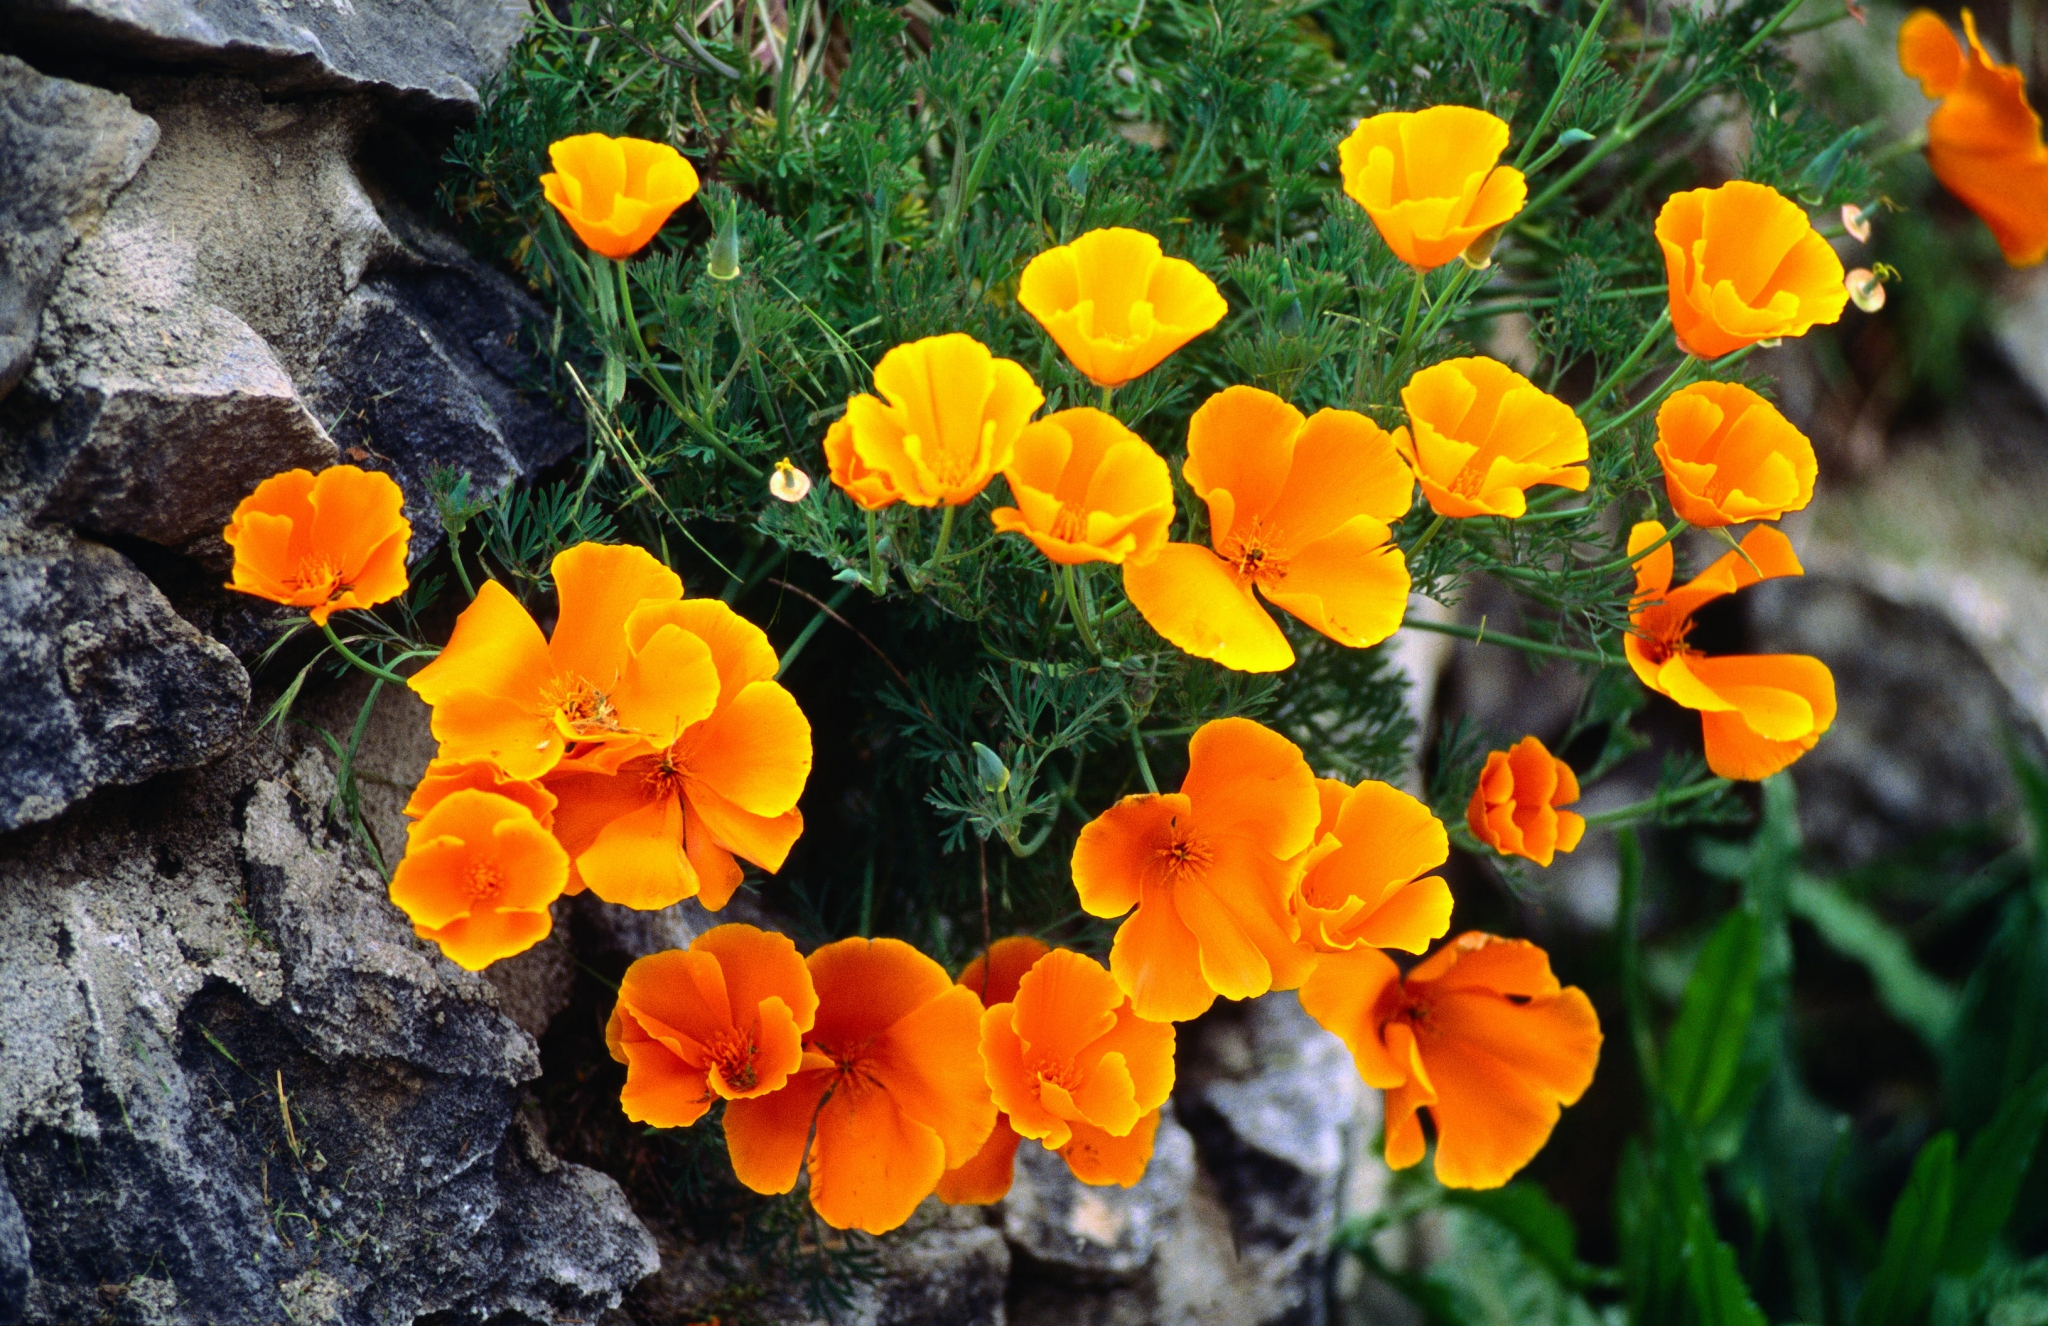 Its Been Legal To Pick California Golden Poppies This Whole Time